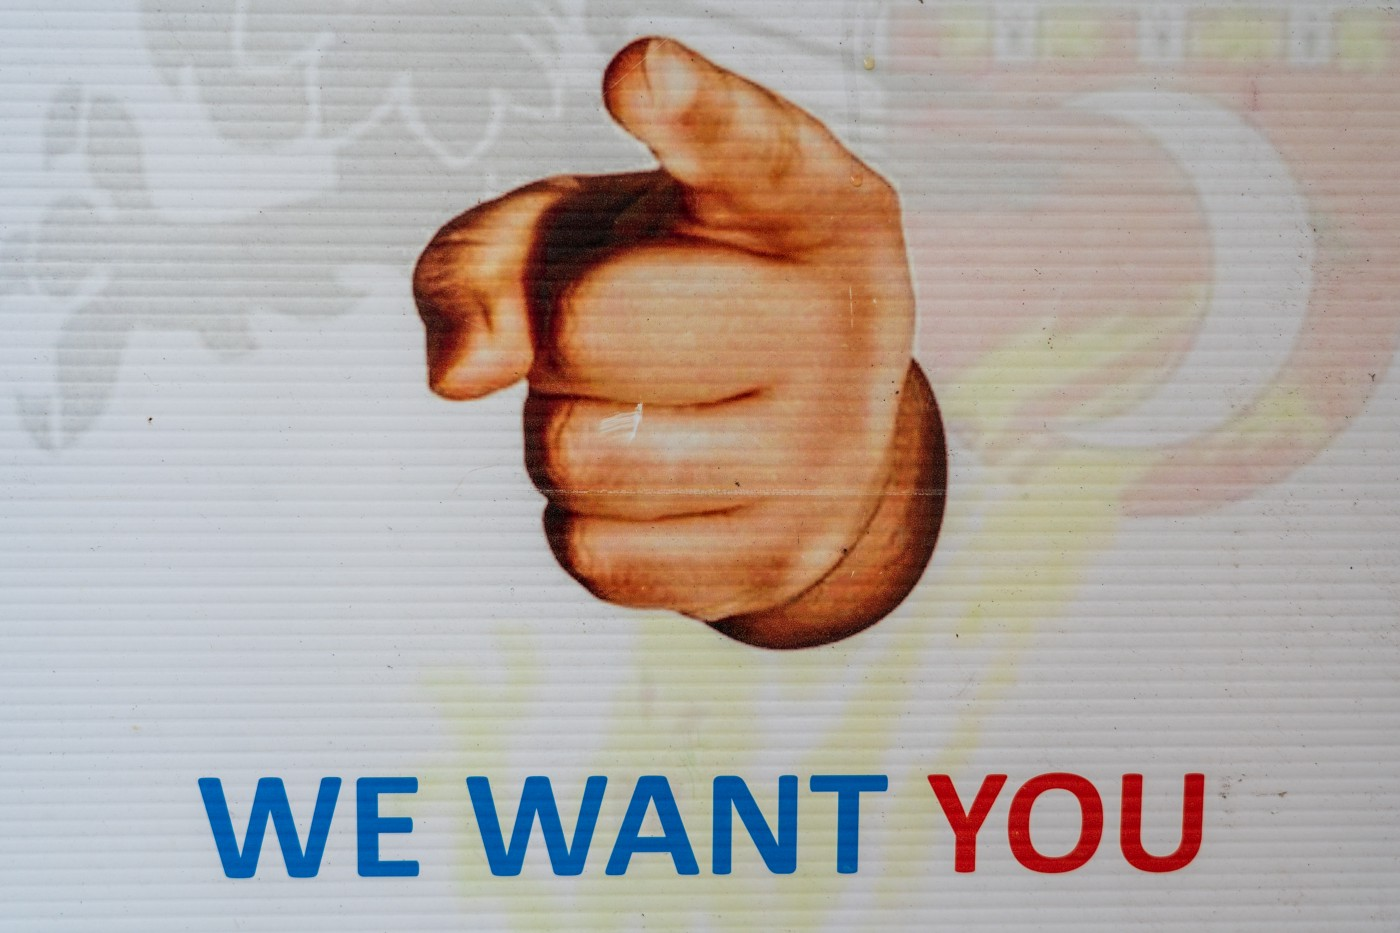 the we want you sign for trying to get persons to join the armed forces